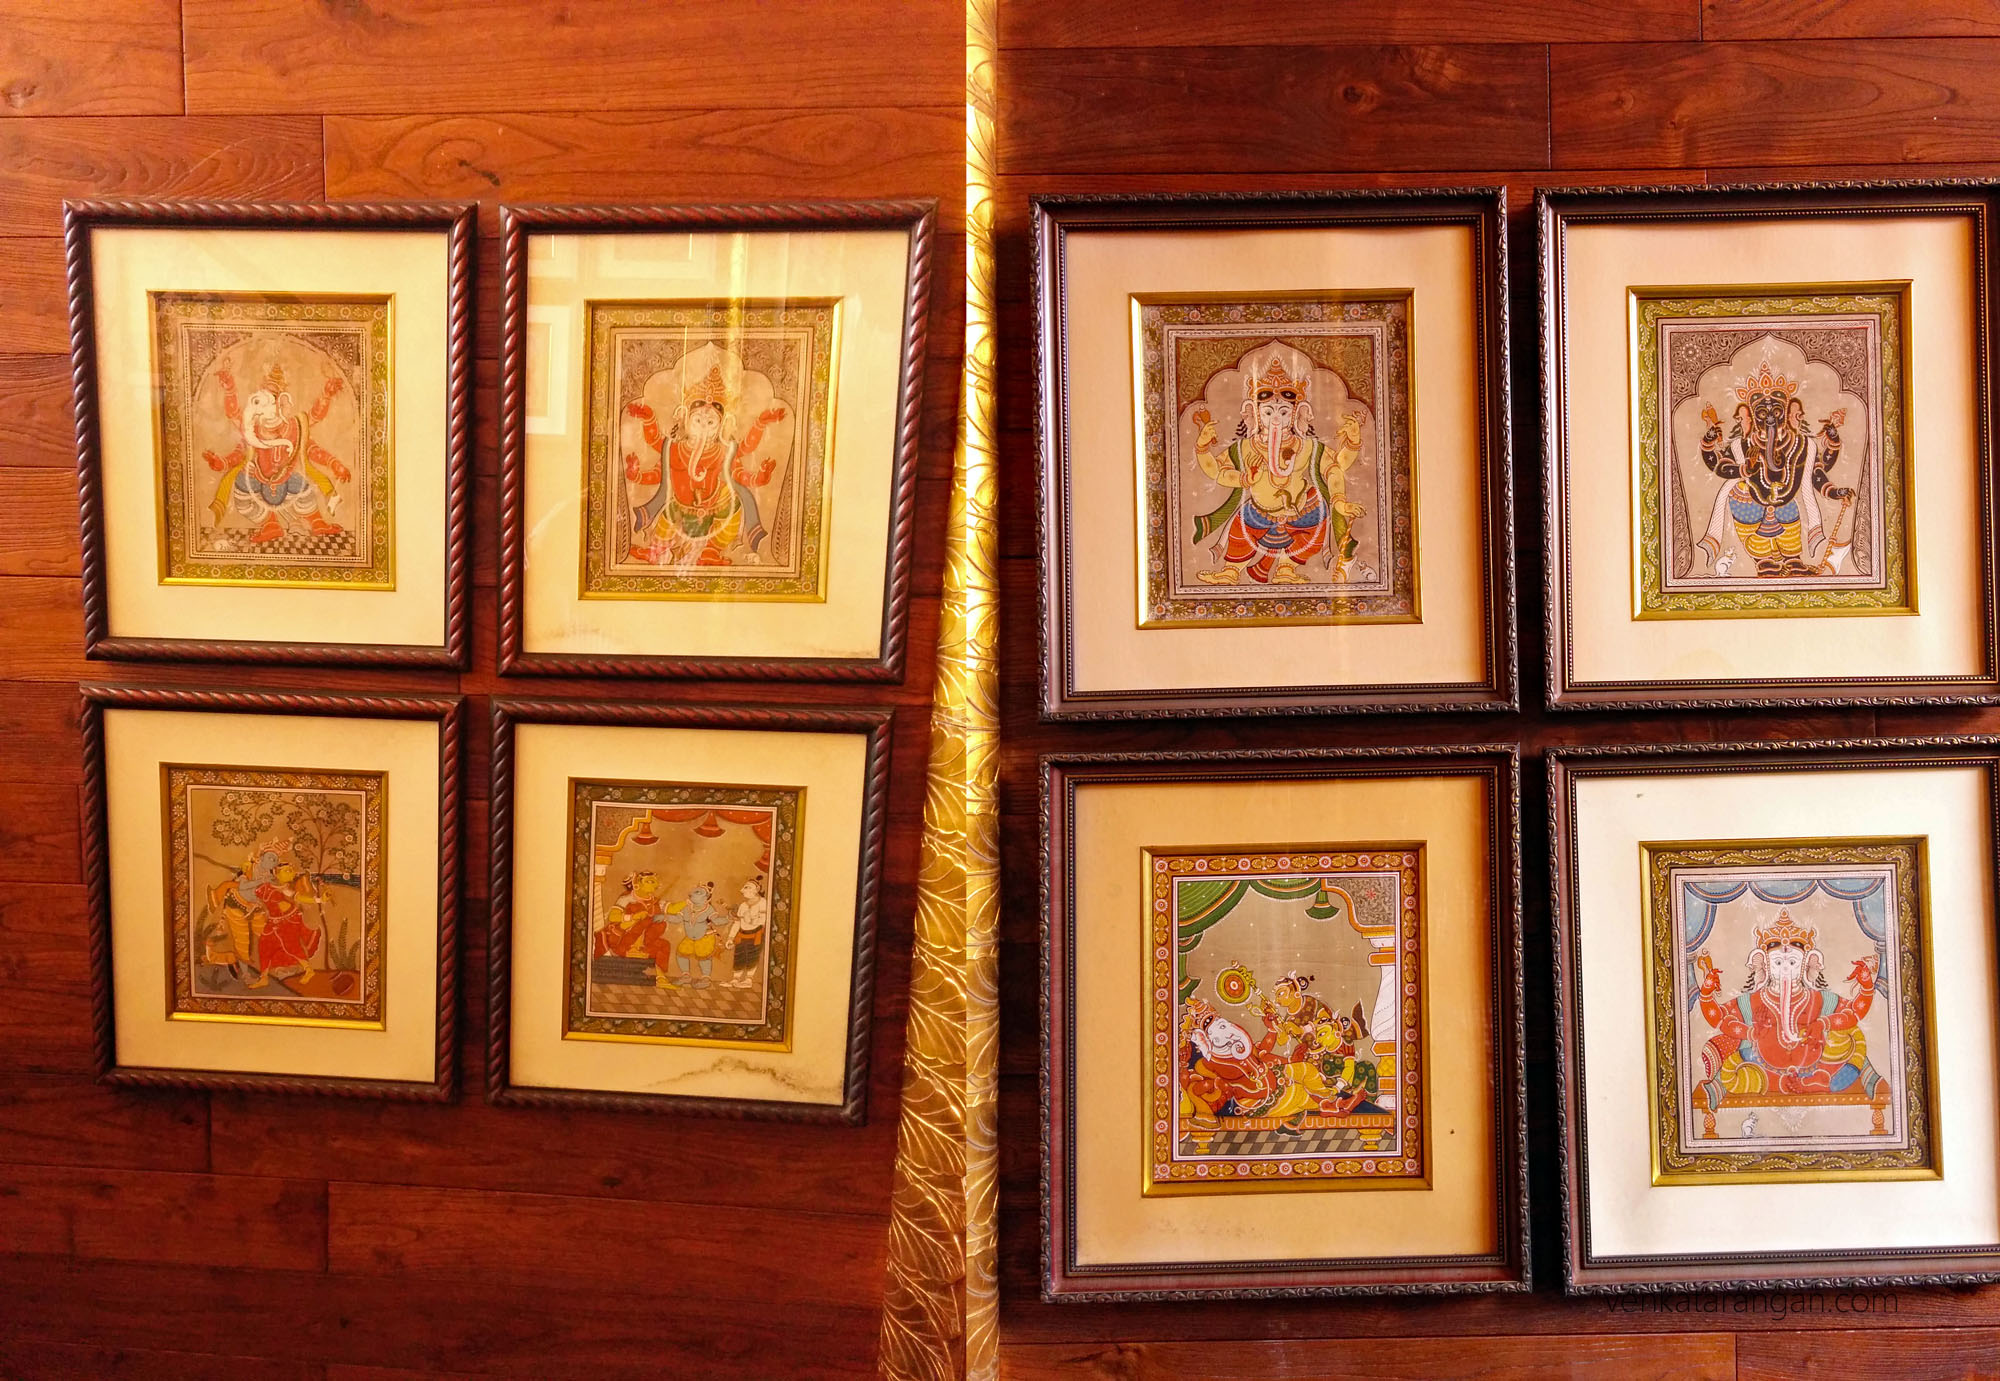 Mayfair Lagoon, Bhubaneswar - All around the property you see lovely paintings